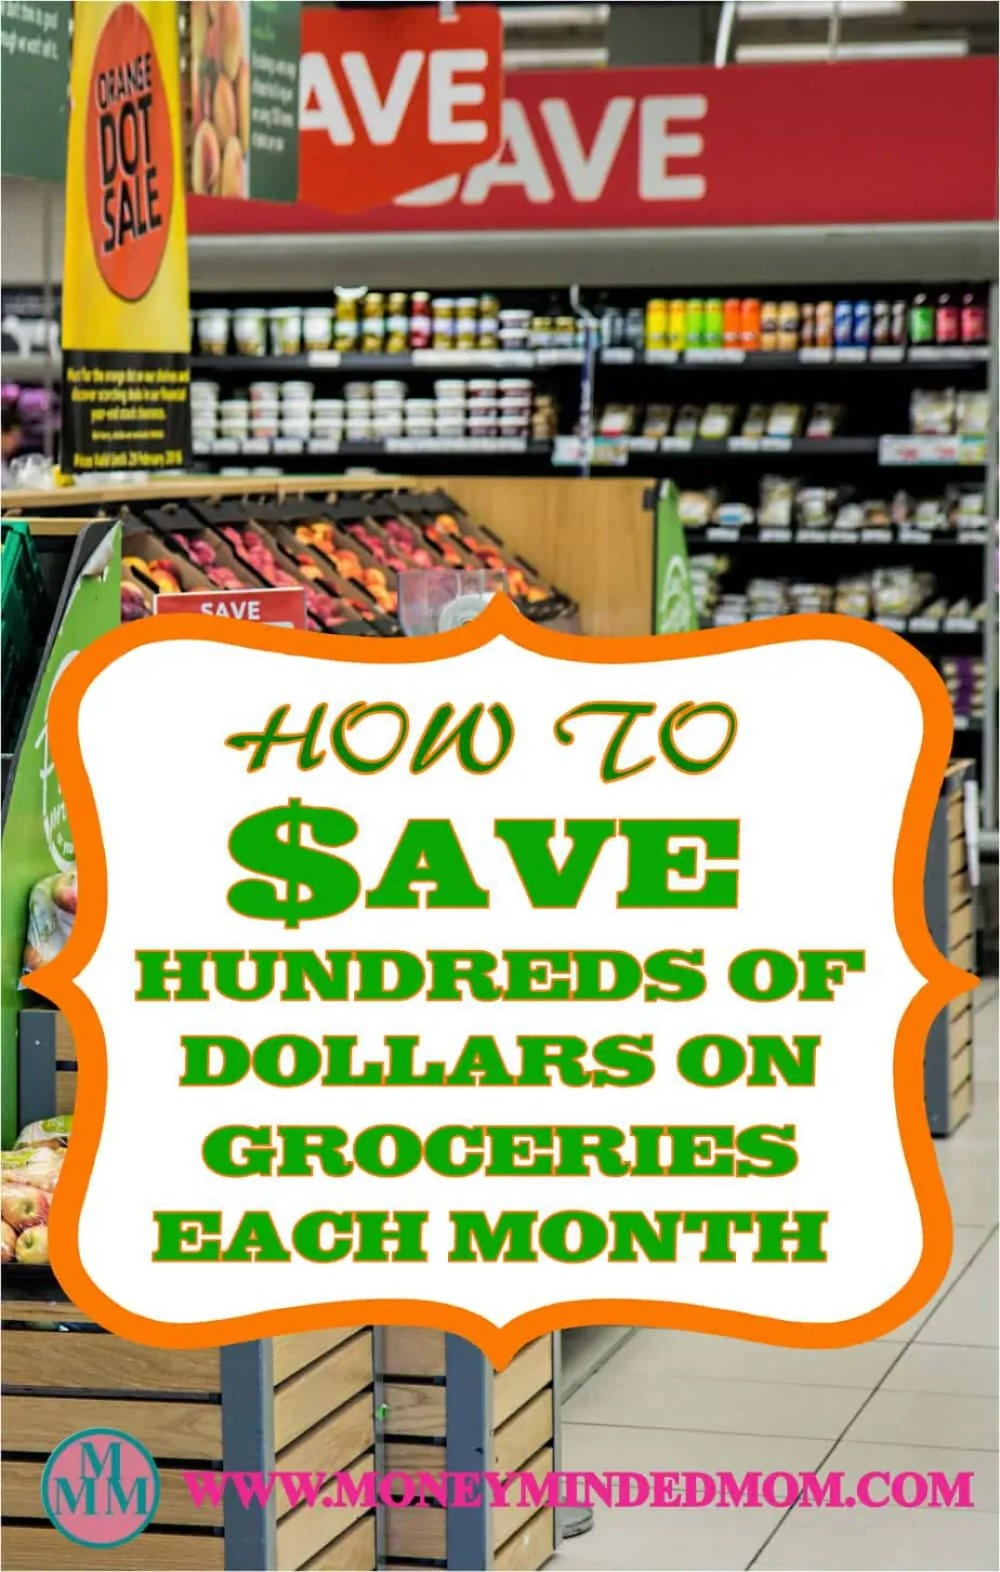 Save Hundreds of Dollars On Groceries Each Month